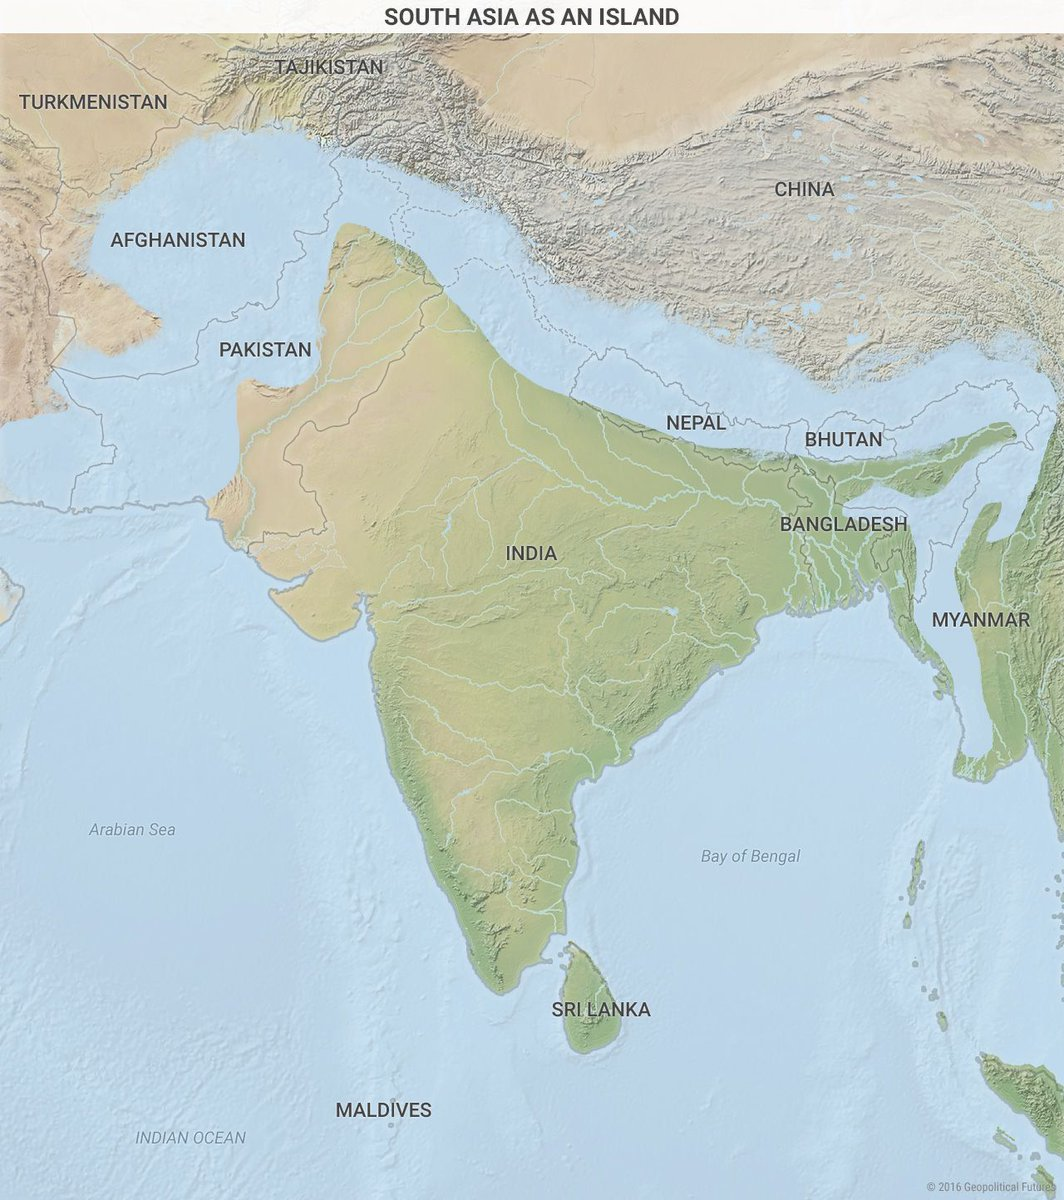 Simon kuestenmacher on twitter clever map by mauldinecon shows shows south east asia as an island to emphasize the strong barrier that the hindukush pamir karakoram himalayas rakhine mountain ranges create gumiabroncs Gallery